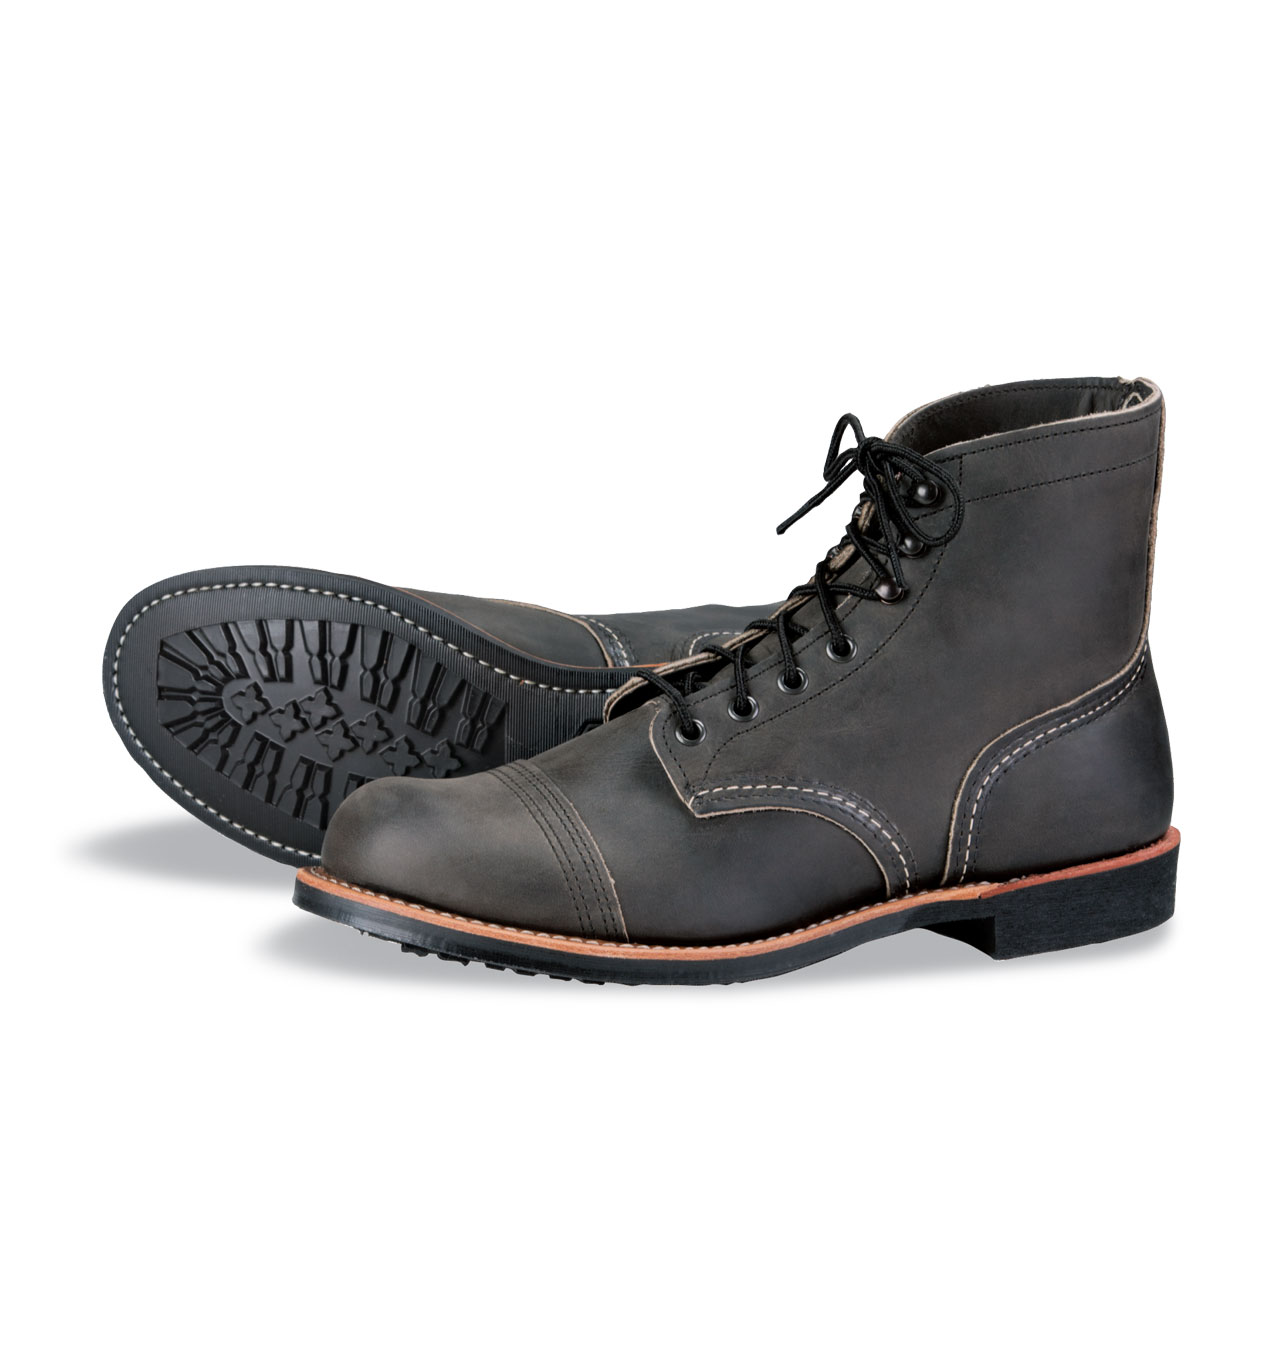 Red Wing Shoes 8086 Iron Ranger - Charcoal Rough & Tough Leather